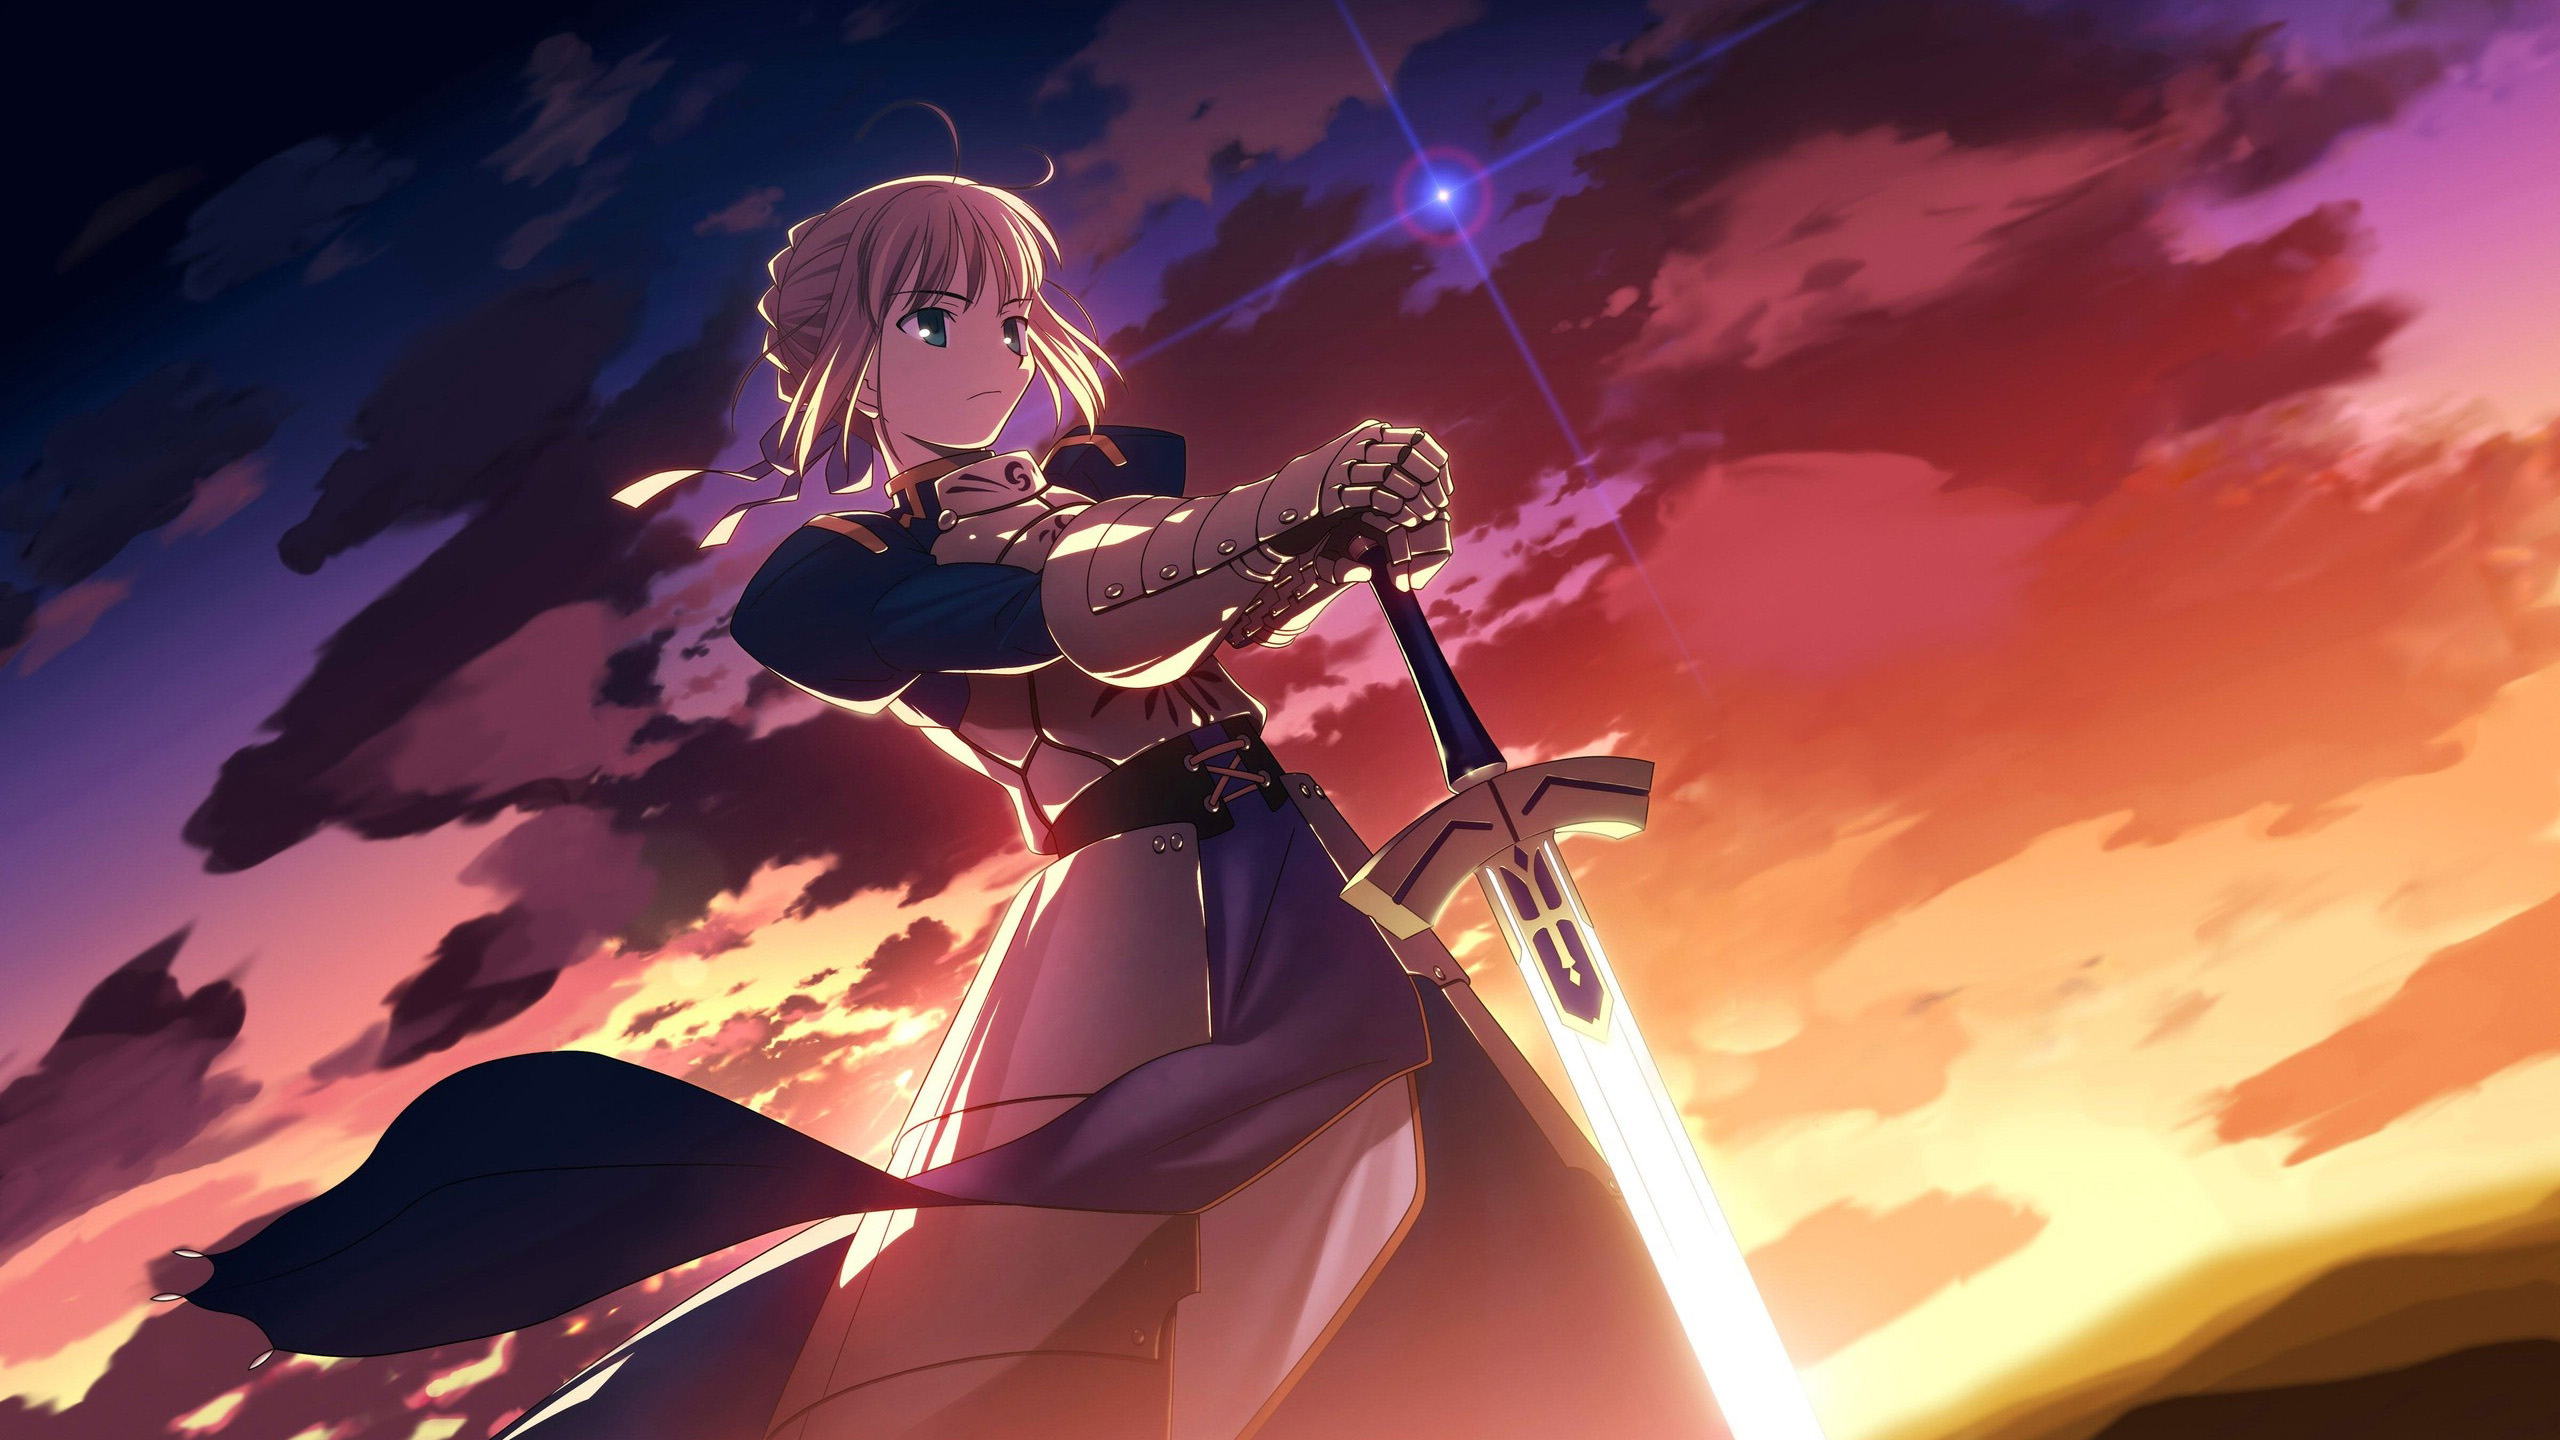 Fate Stay Night Saber Wallpapers HD Wallpapers 2560x1440